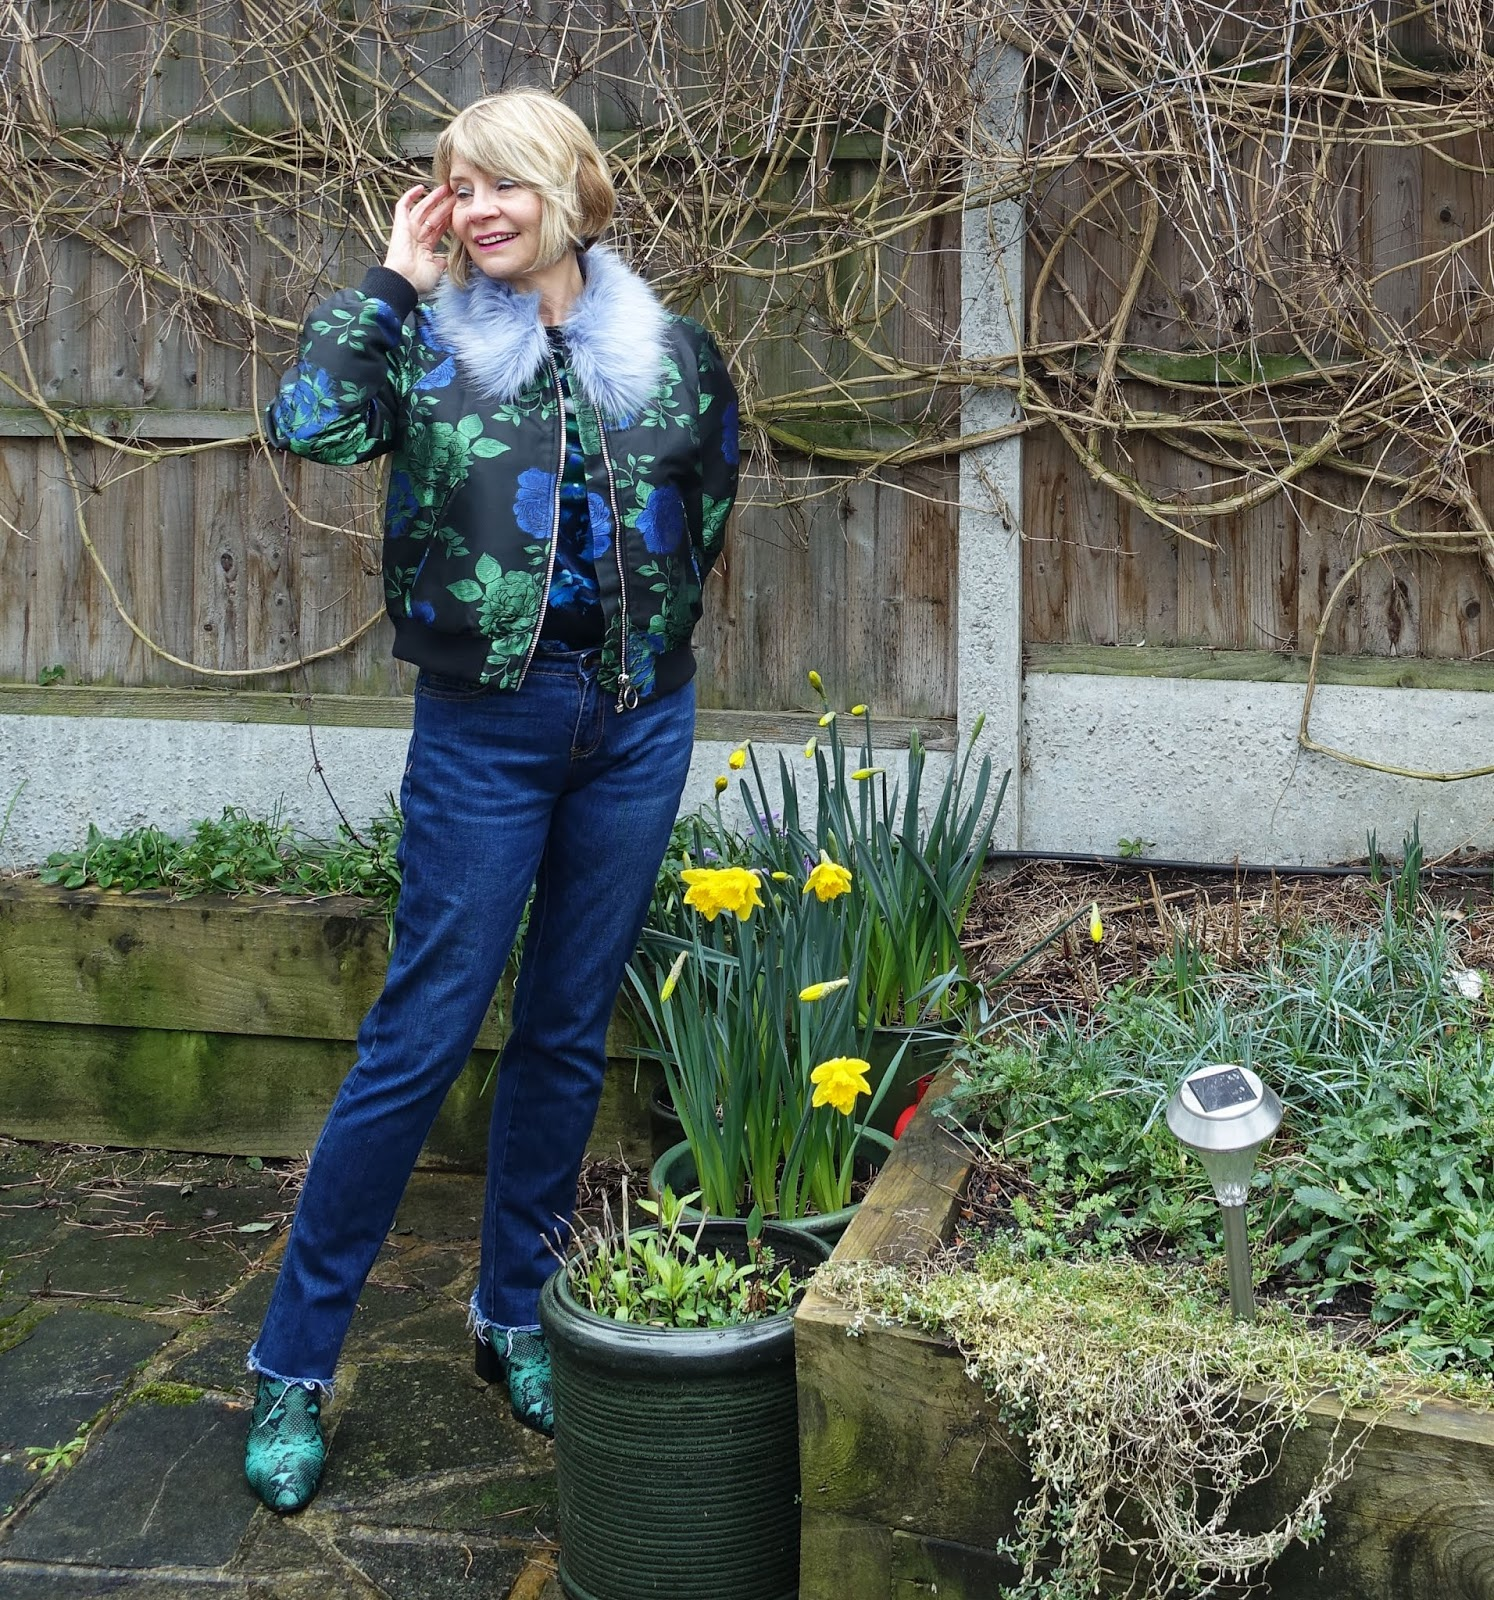 Floral brocade bomber jacket with jeans and green snakeskin boots